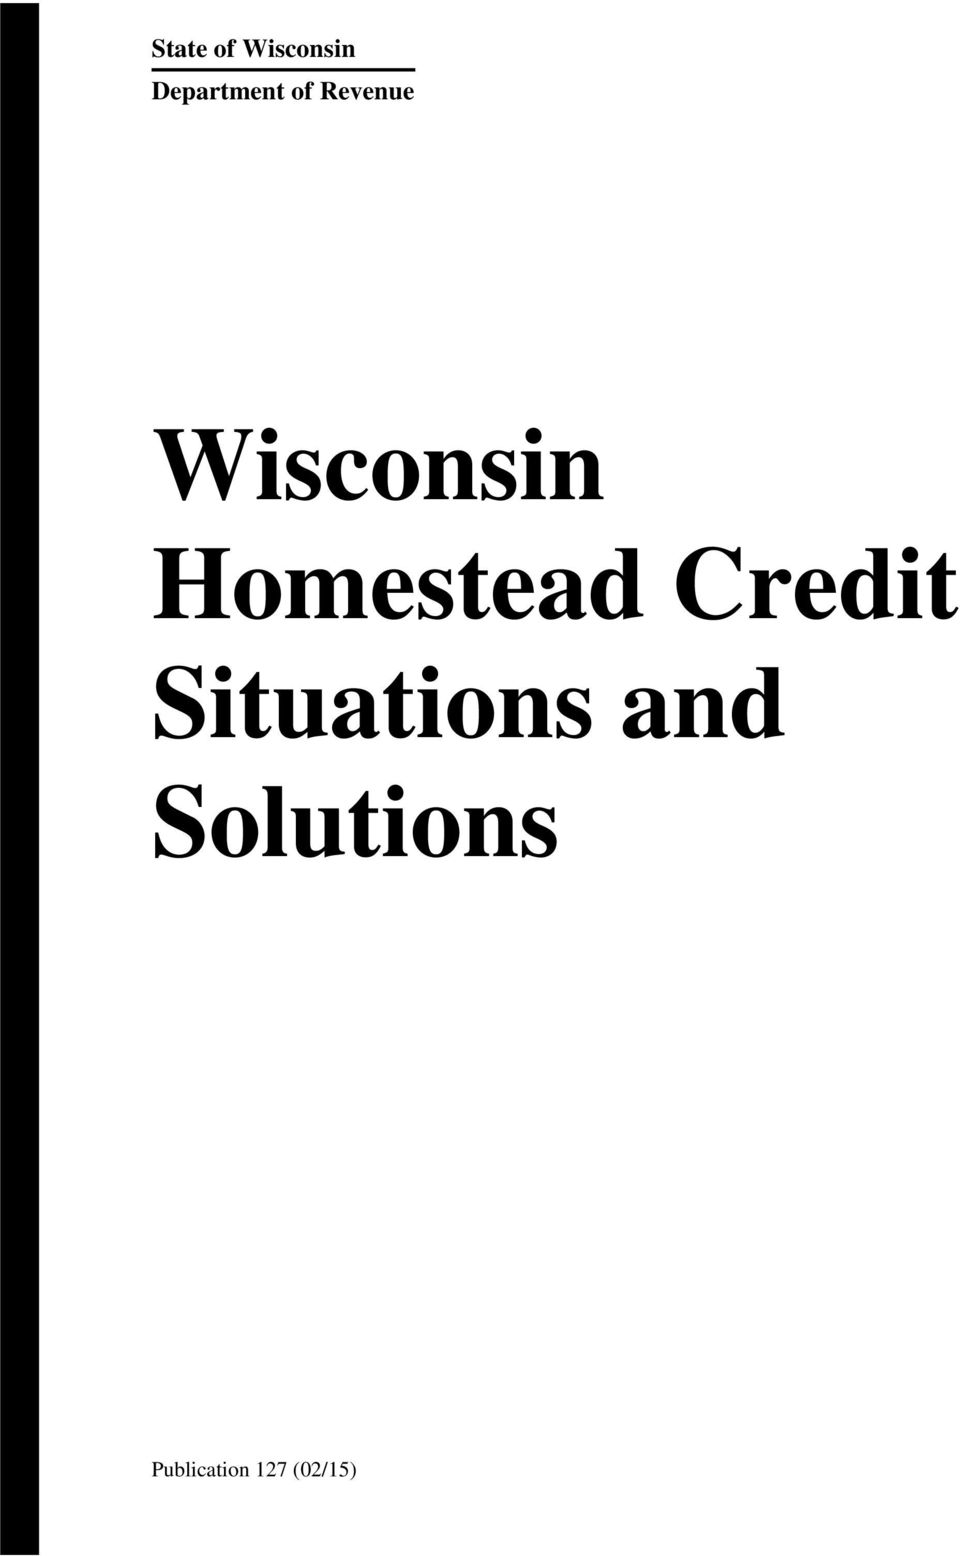 Wisconsin Homestead Credit